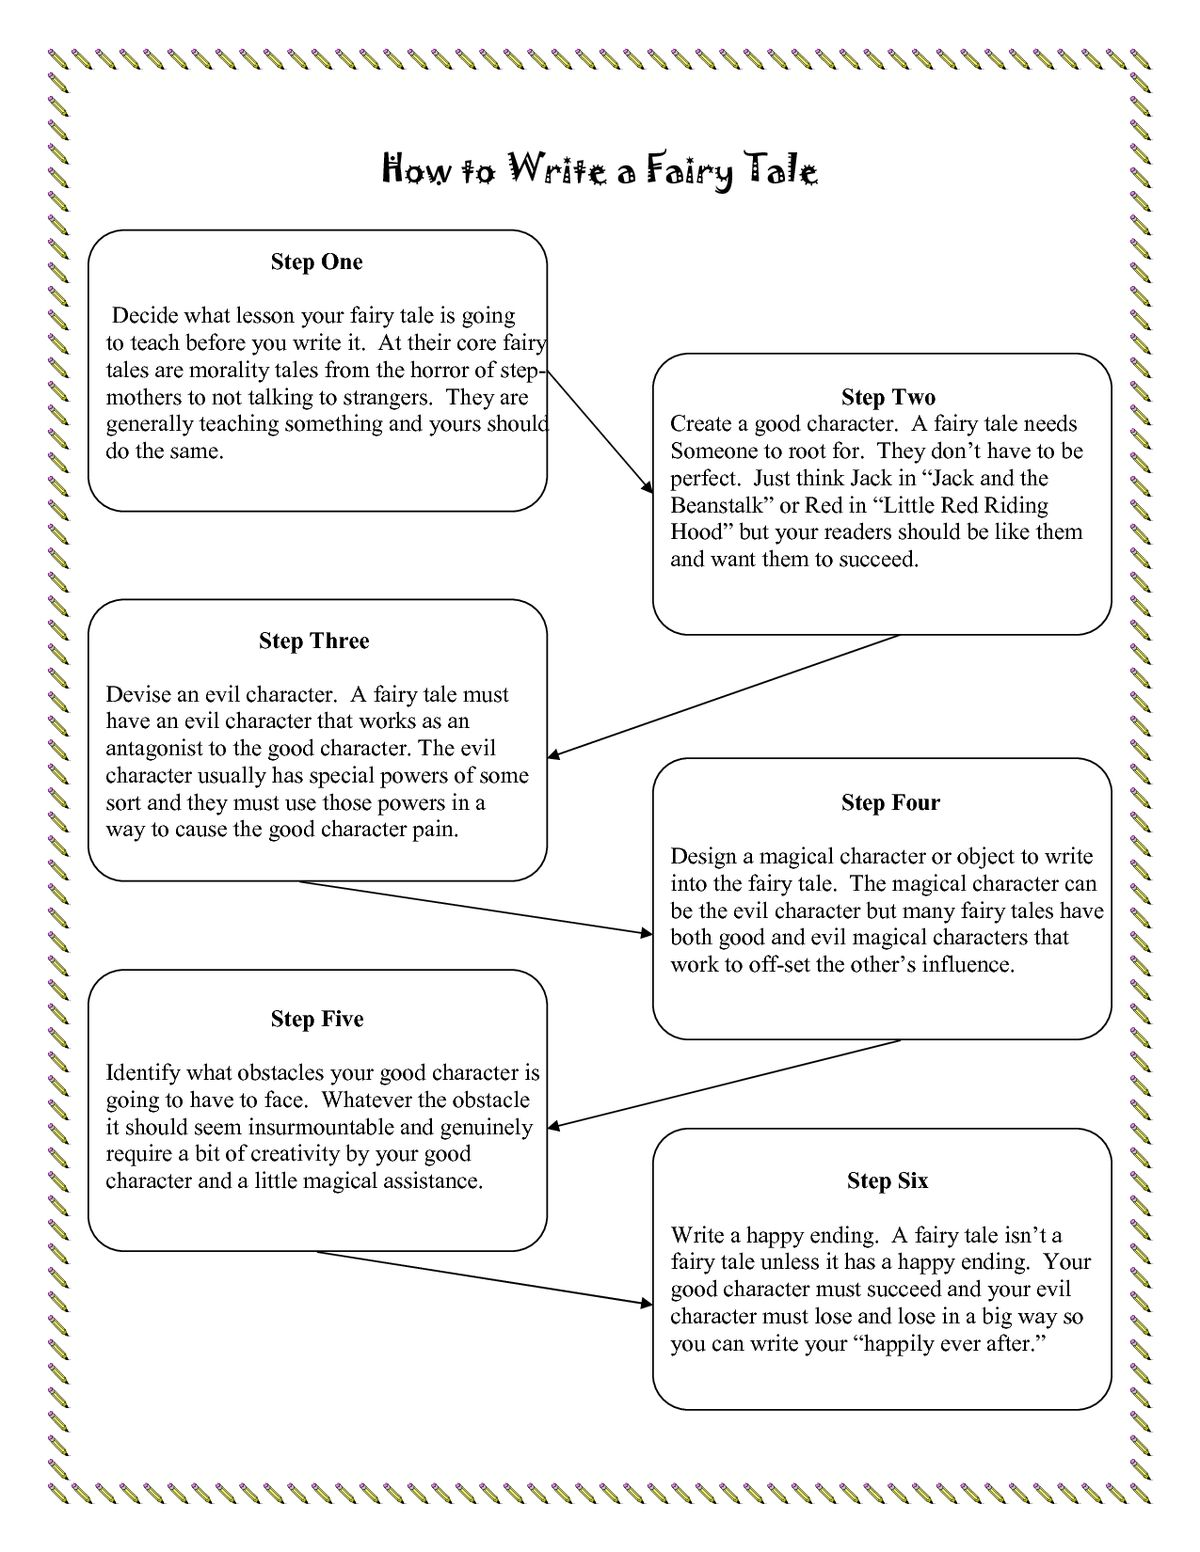 fractured fairy tale Introducing a fractured fairy tales unit is just the beginning to fun, exciting learning in your classroom students will love these comical stories of crazy heroes and funny situations the students will think they have left reading class and entered a world of fun while also learning story elements, characteristics of a fractured fairy tale.